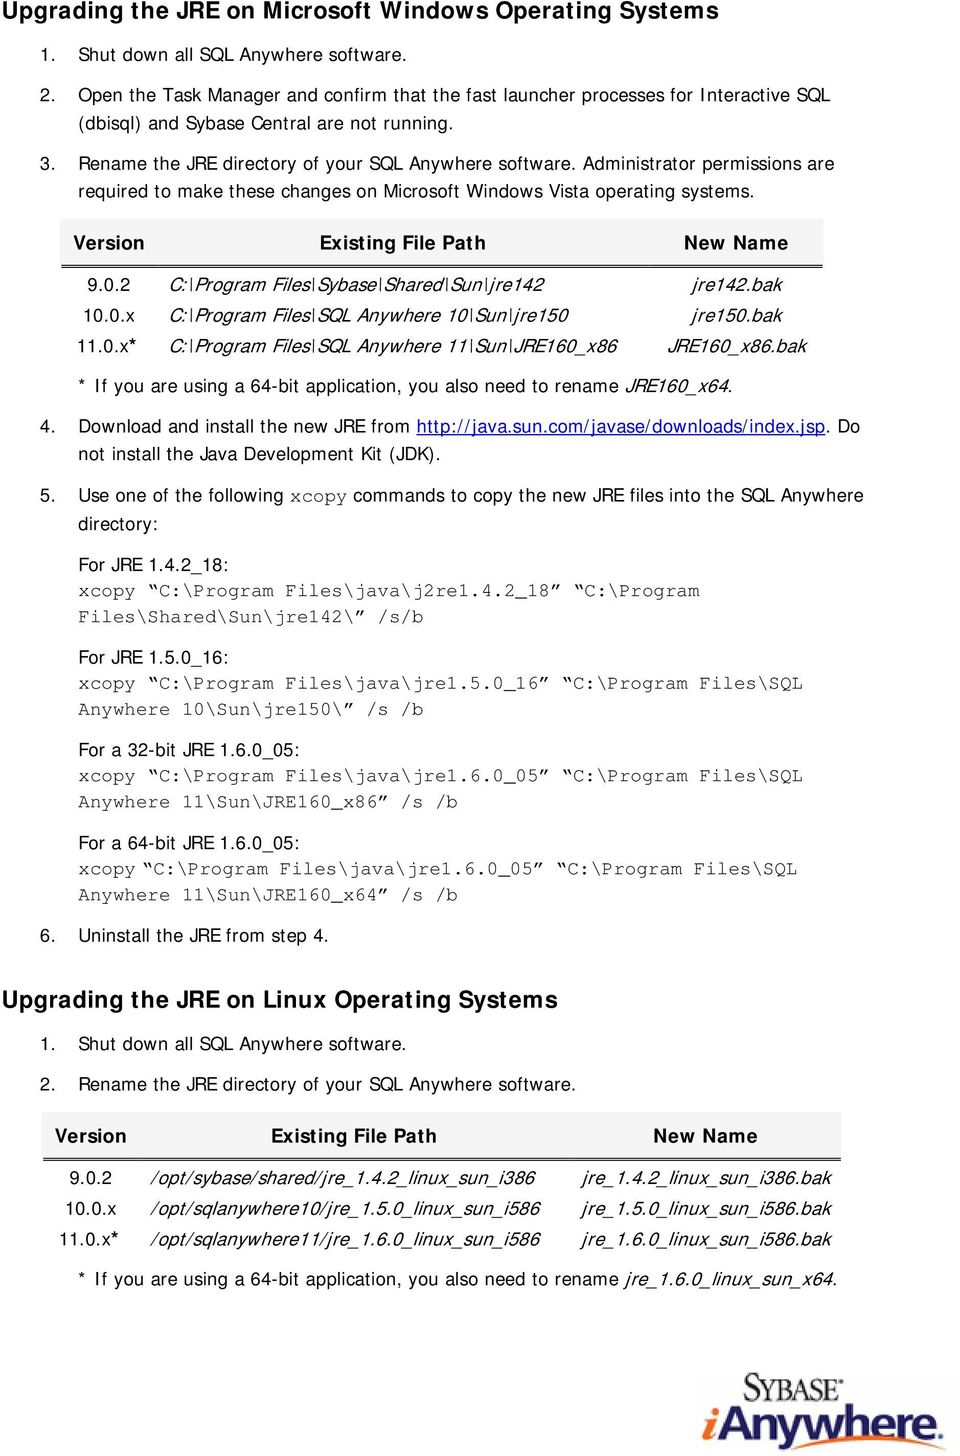 Updating the SQL Anywhere Java Runtime Environment  A whitepaper